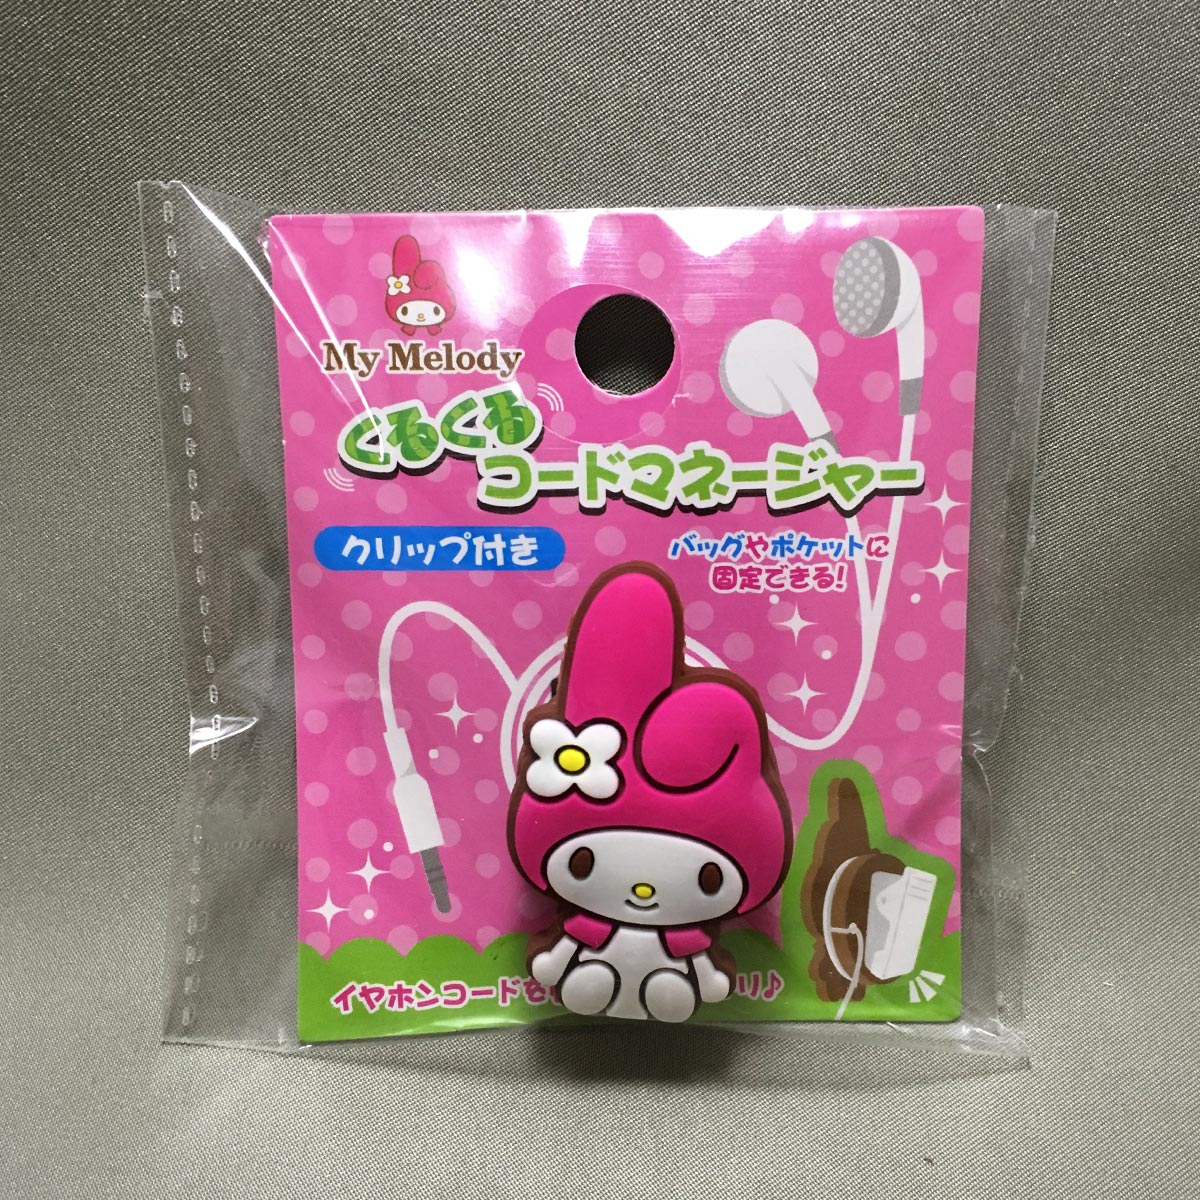 My Melody Cord Manager - front packaging